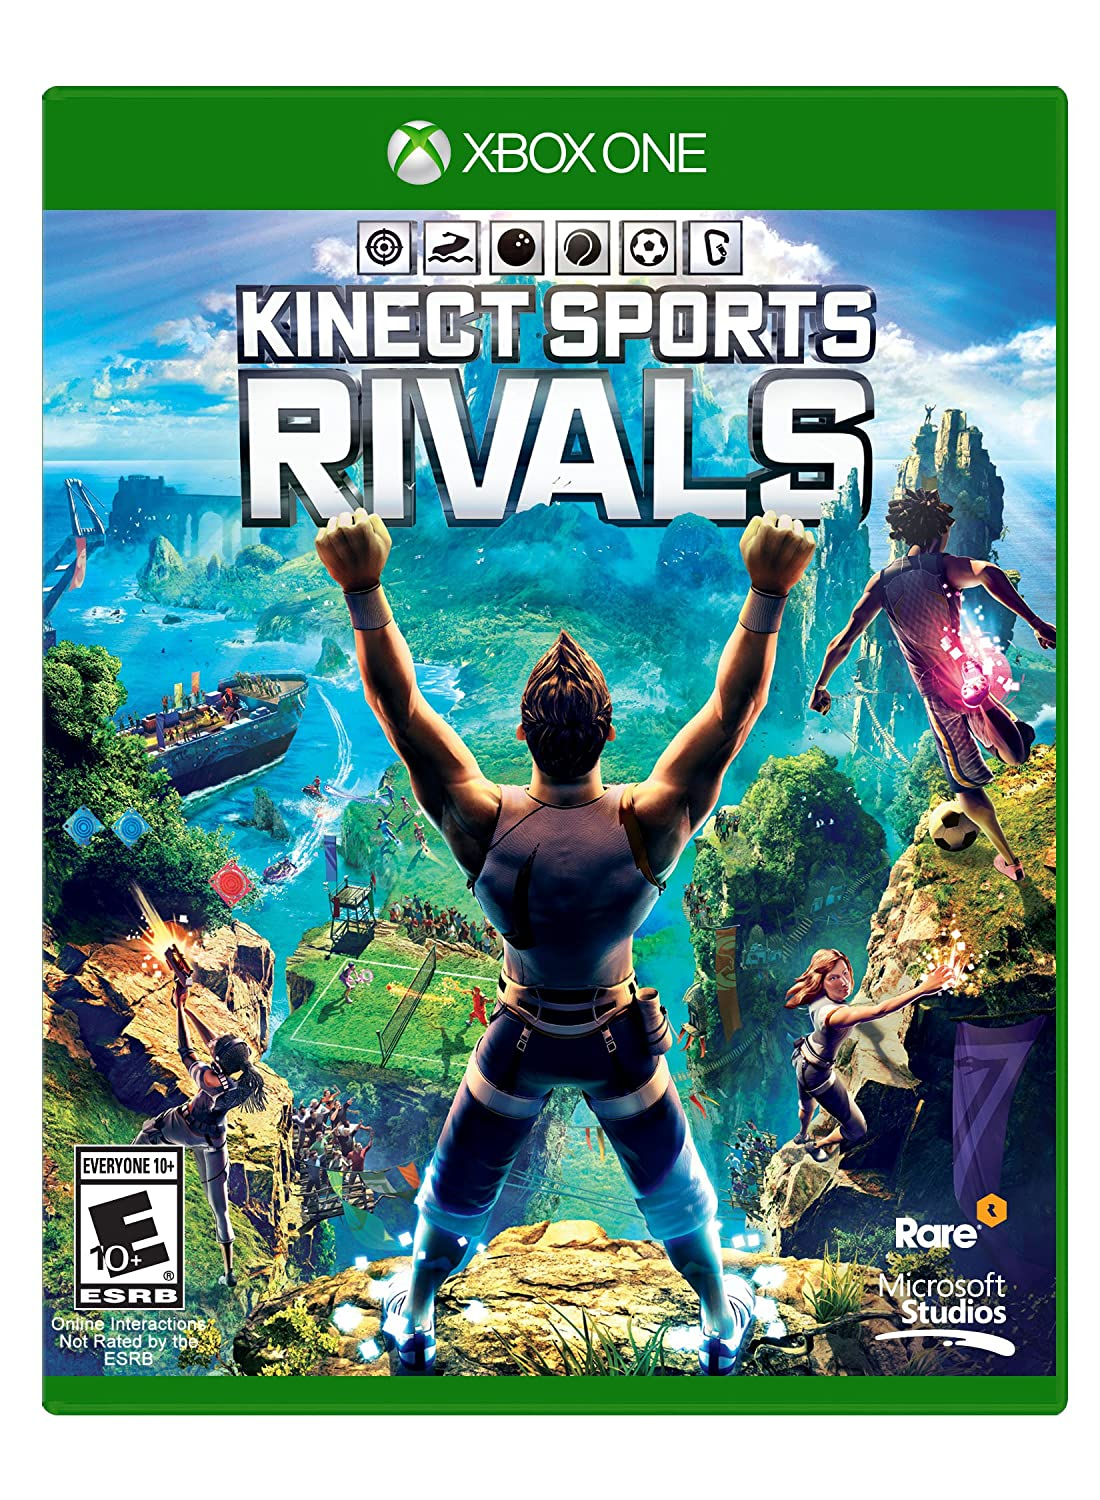 Amazon.com: Kinect Sports: Rivals - Xbox One: Video Games